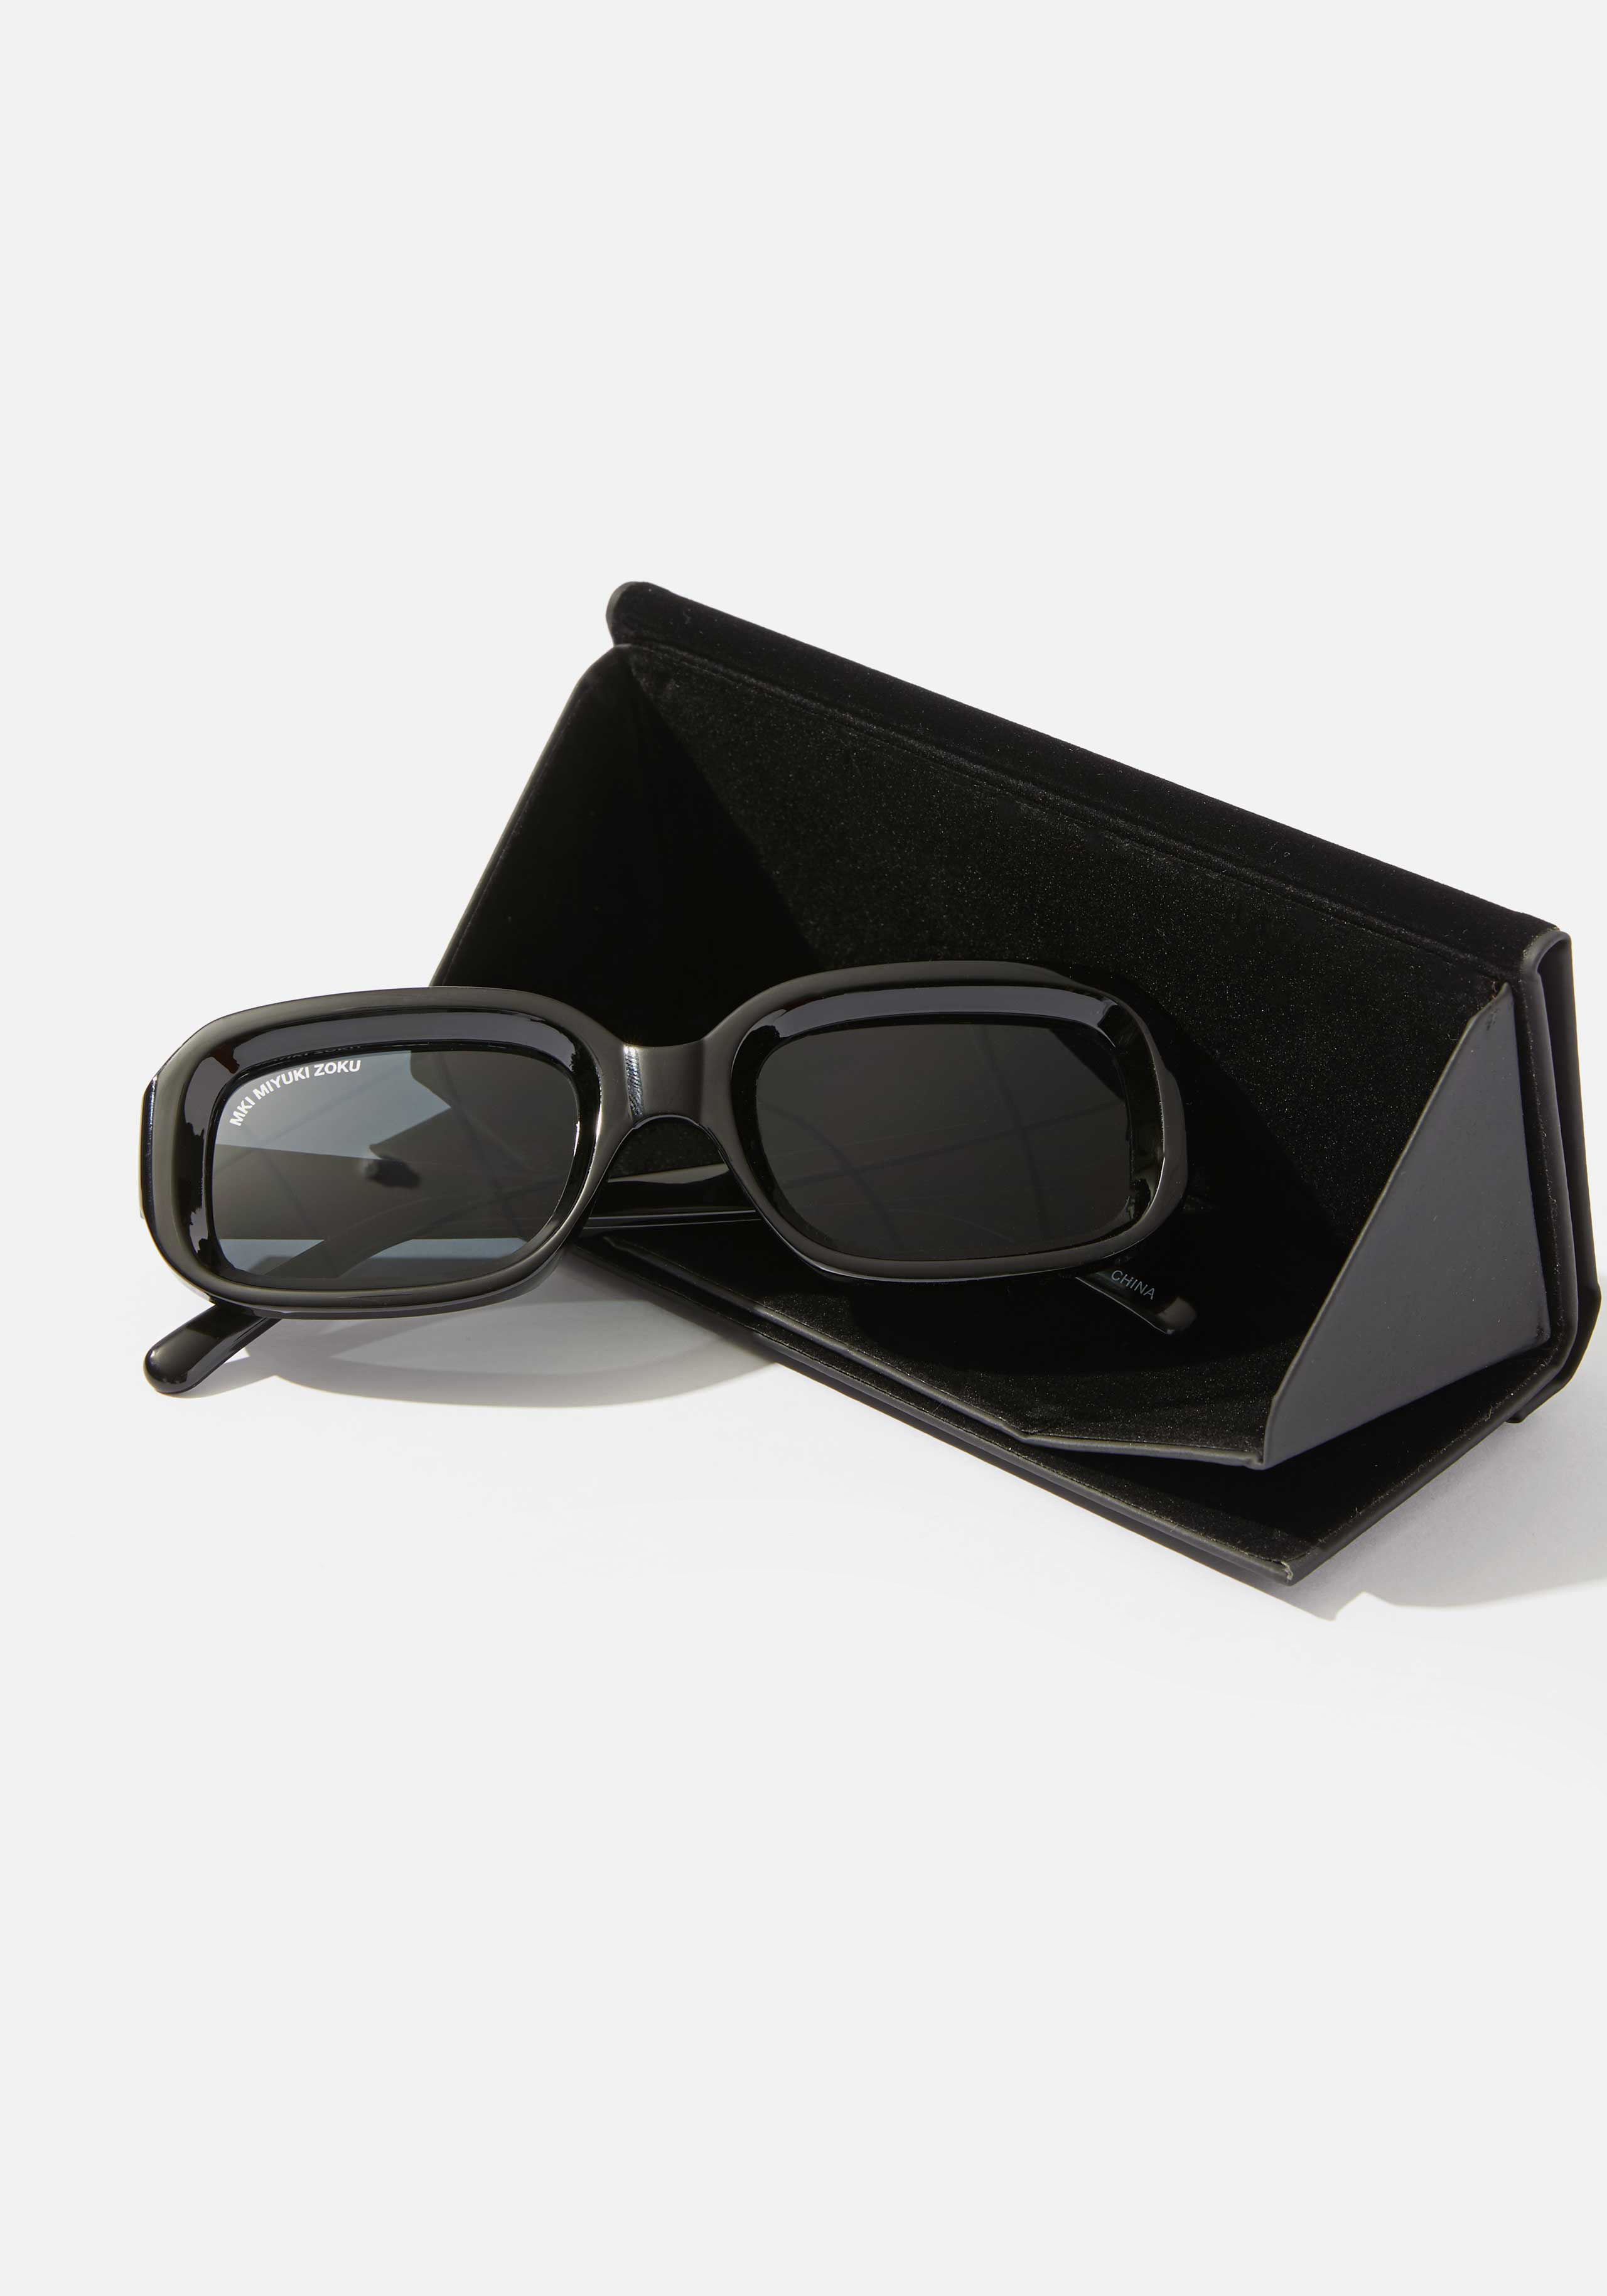 mki moulded convex sunglasses 4